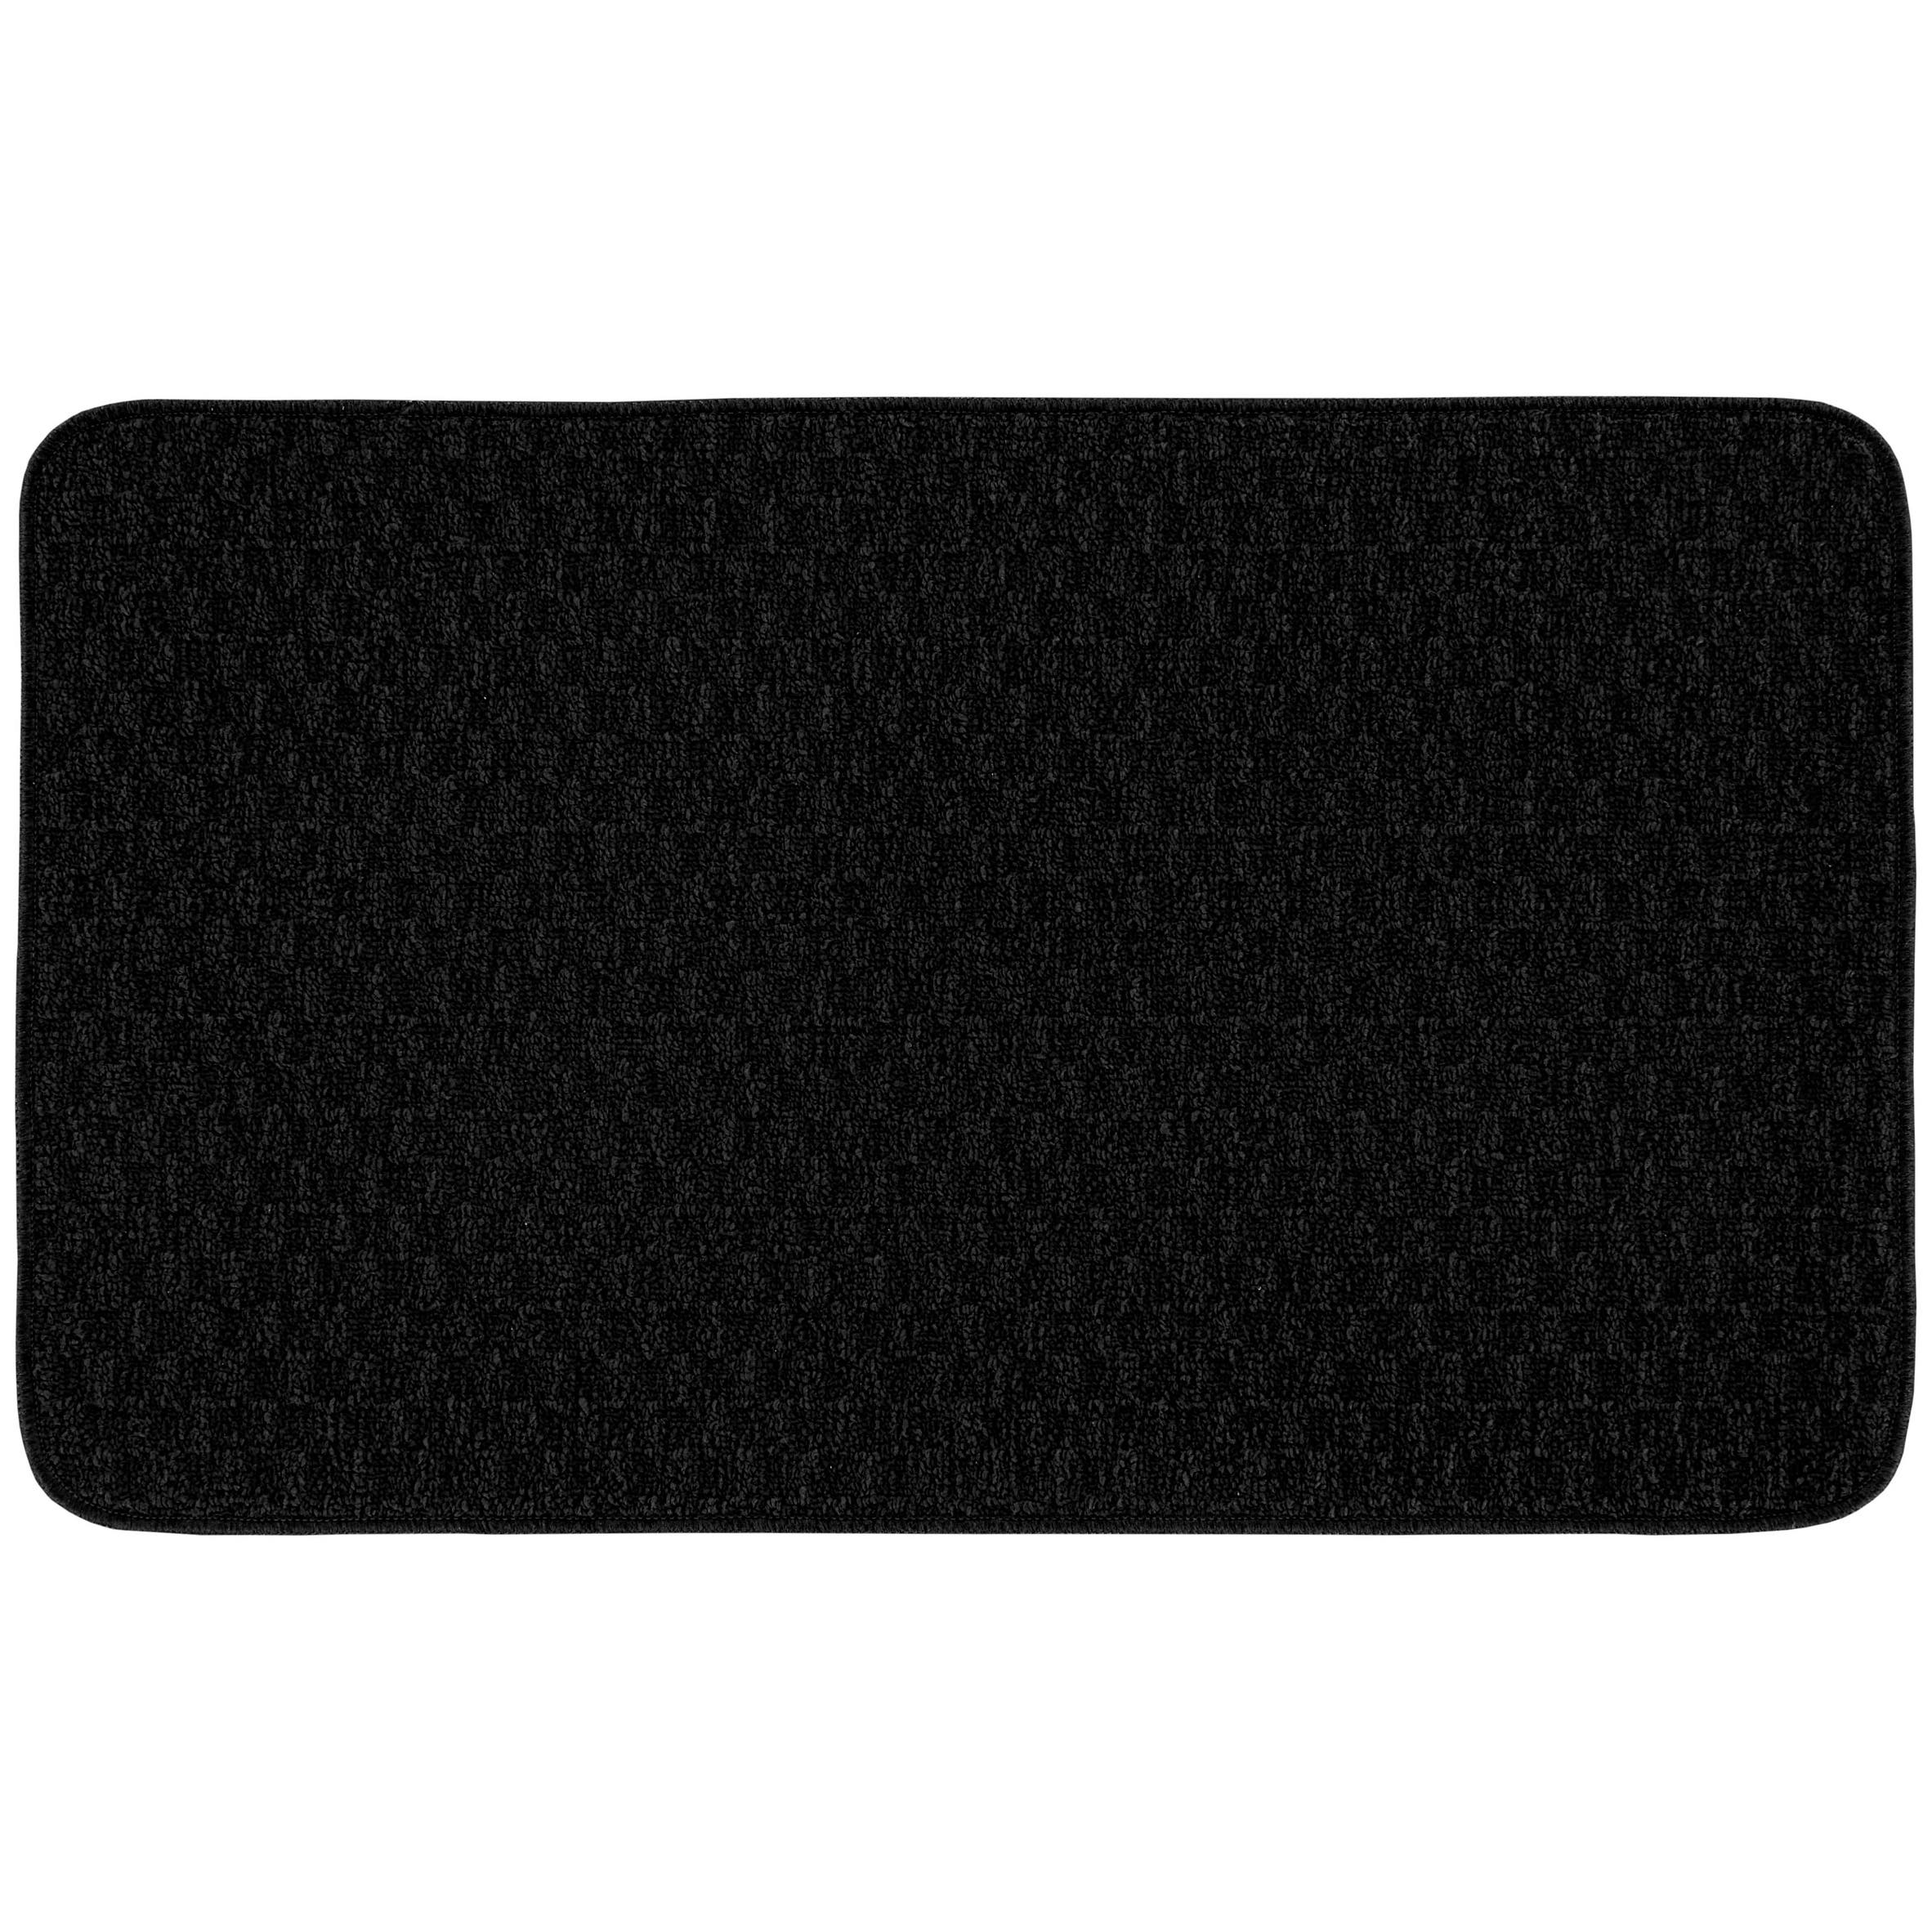 Buy Kitchen Rugs & Mats Online At Overstock.com